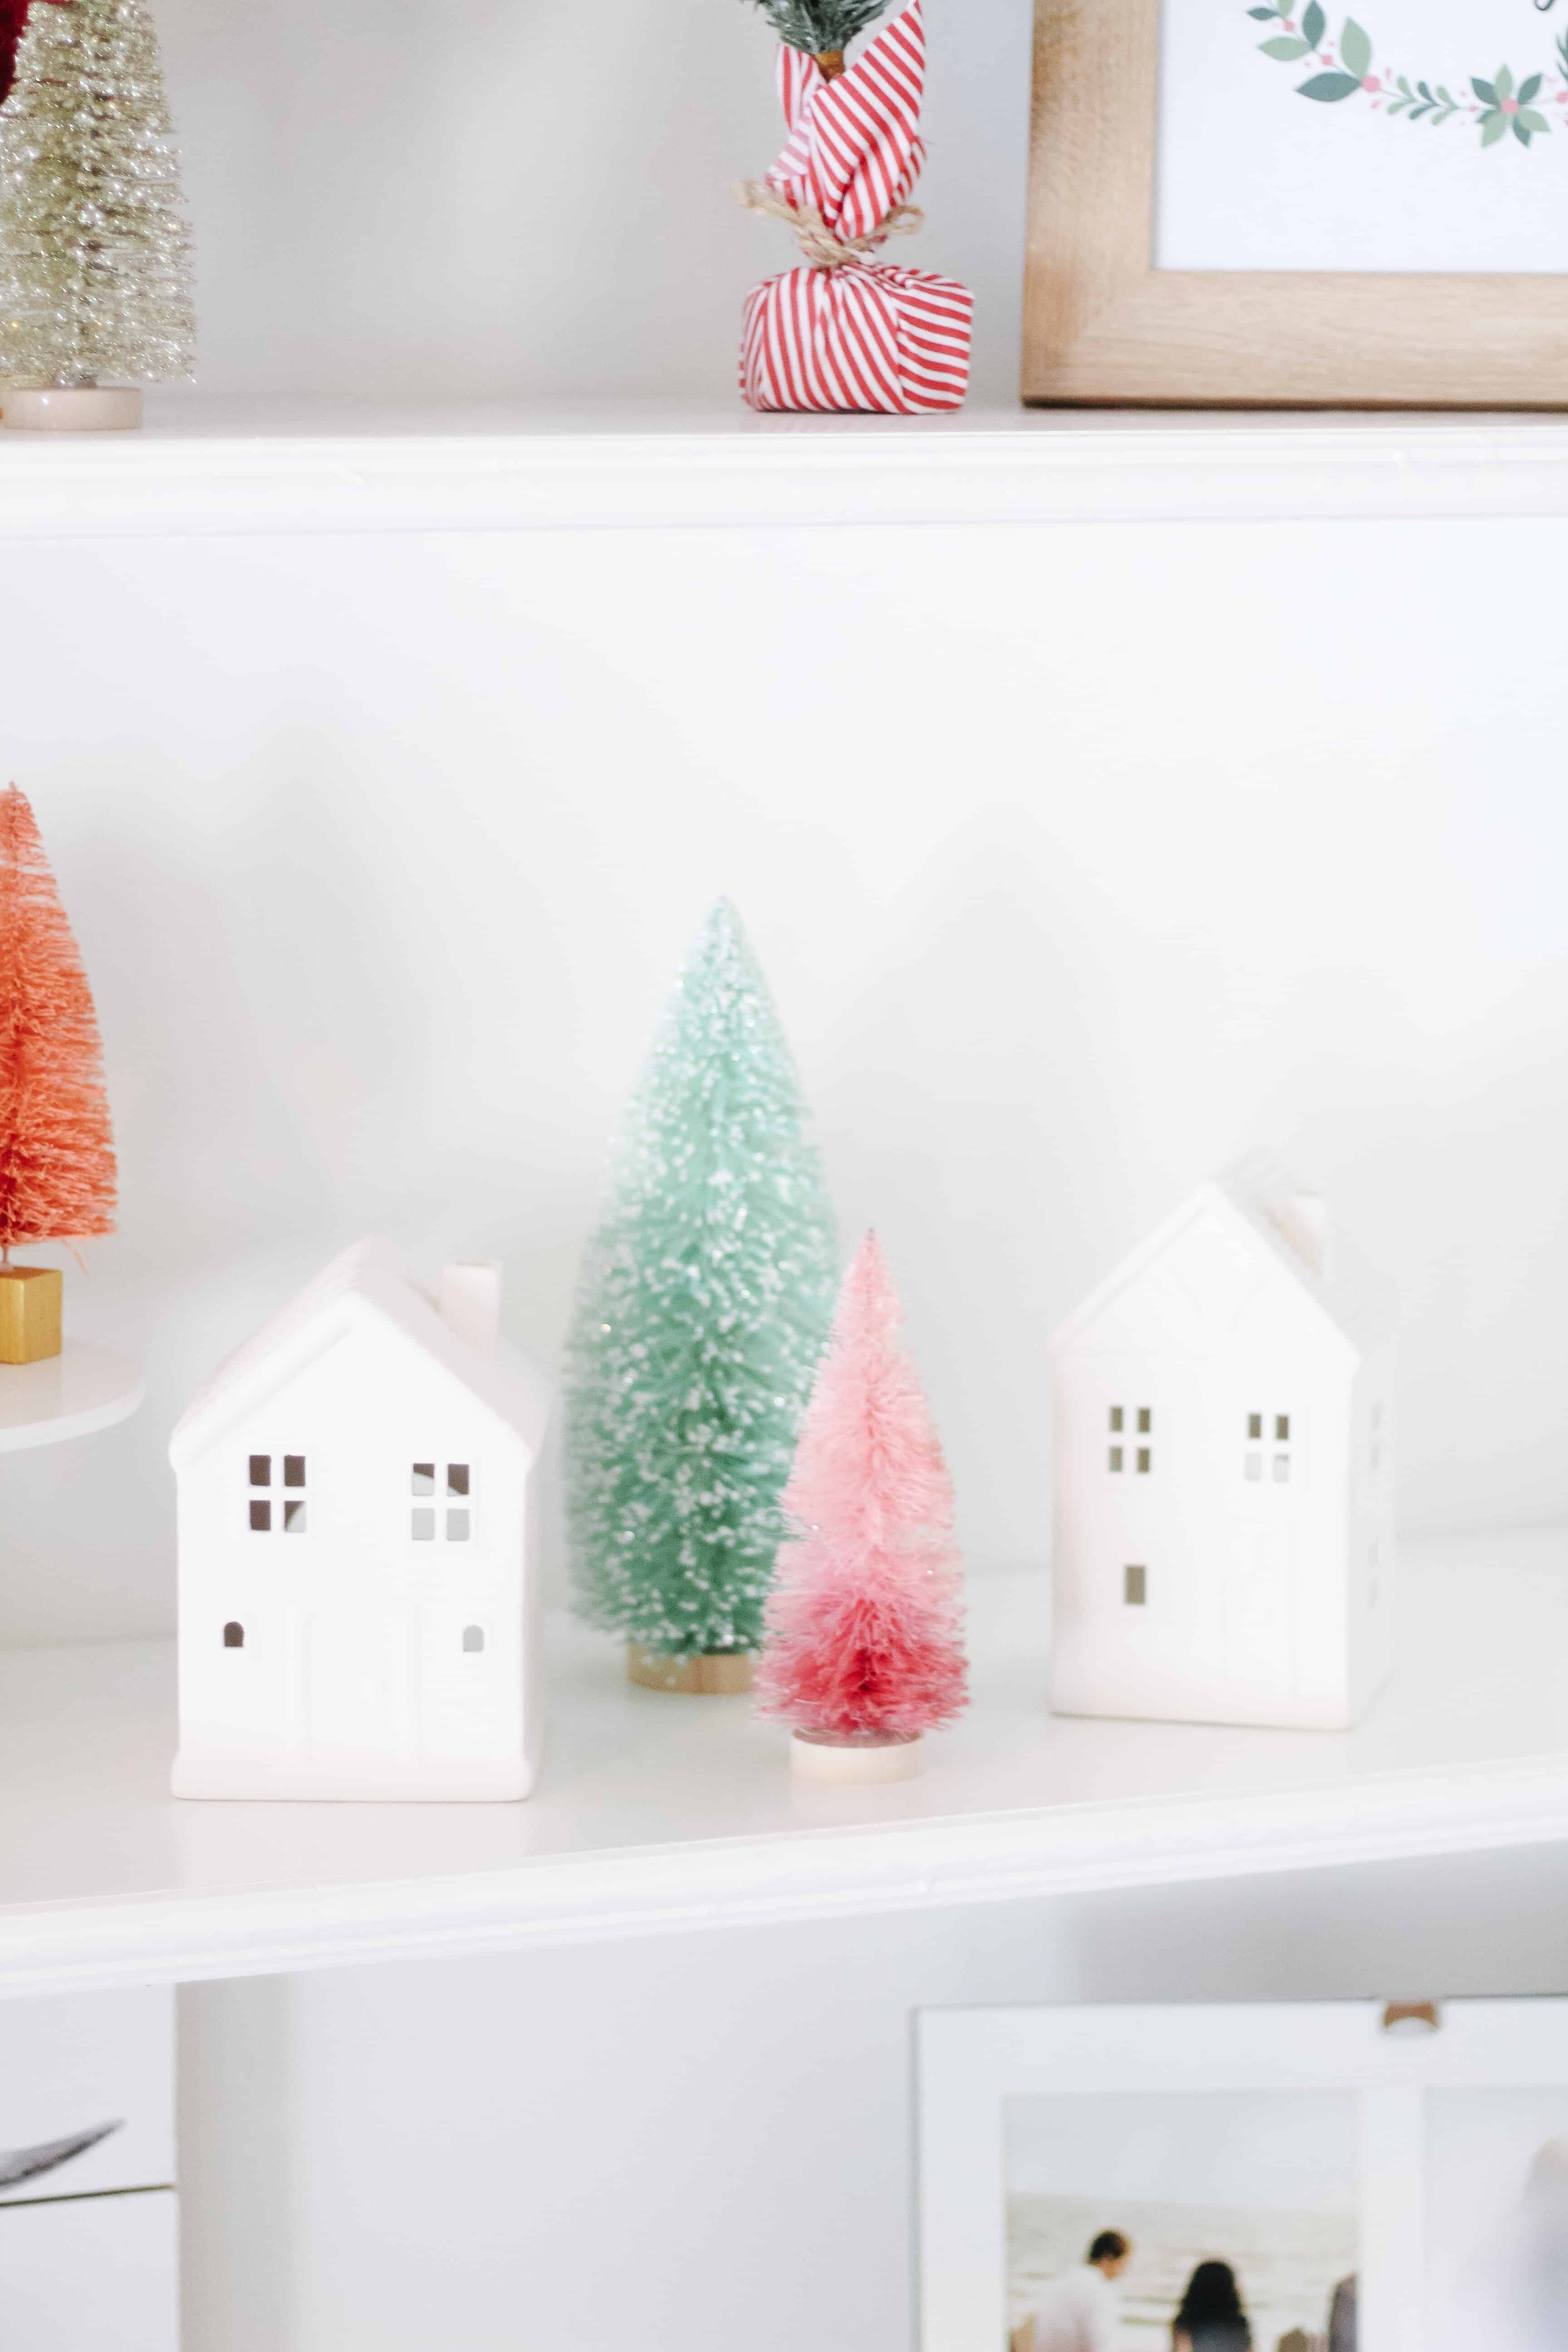 Merry and Bright shelves